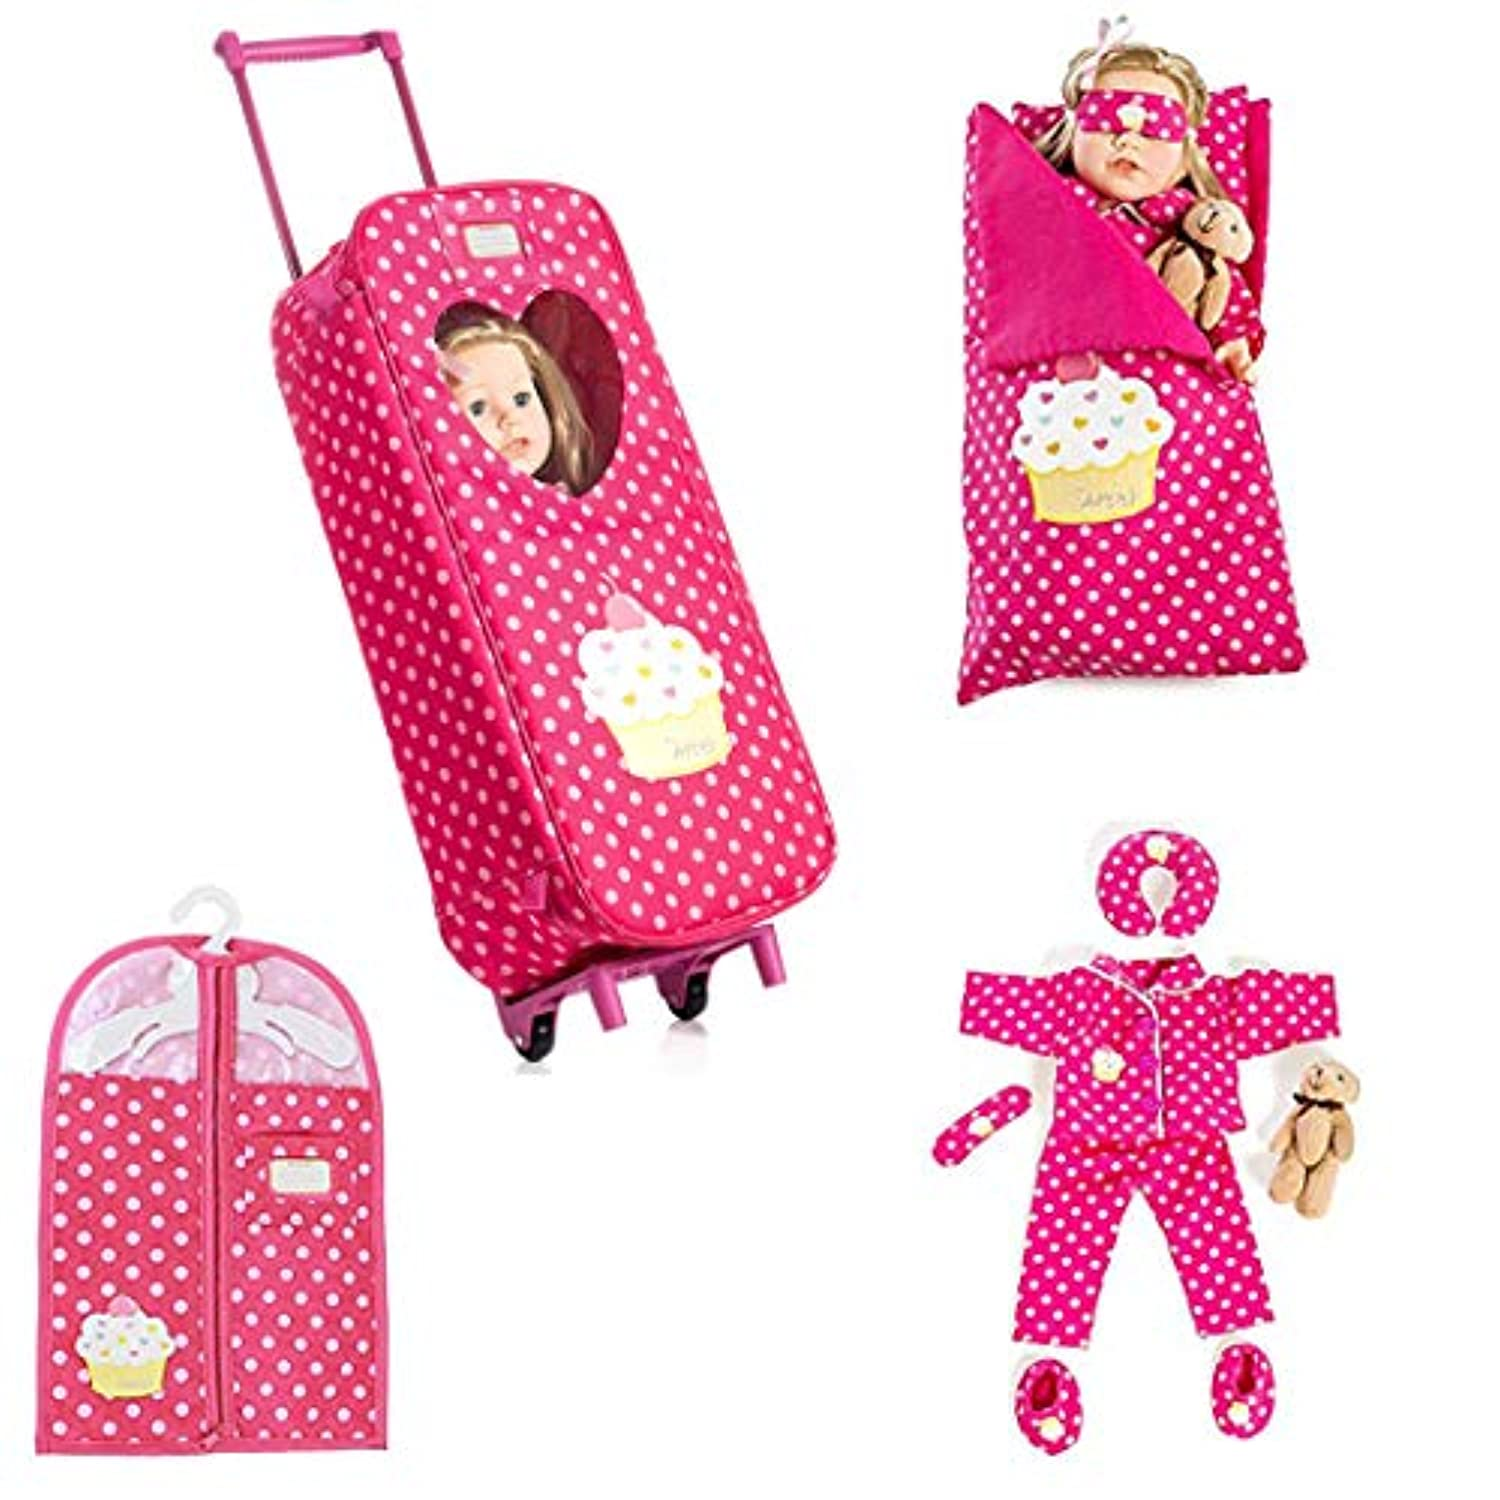 8 Piece Doll Travelling Trolley Set fits 46cm American girl Doll Including Pyjamas Sleeping Bag